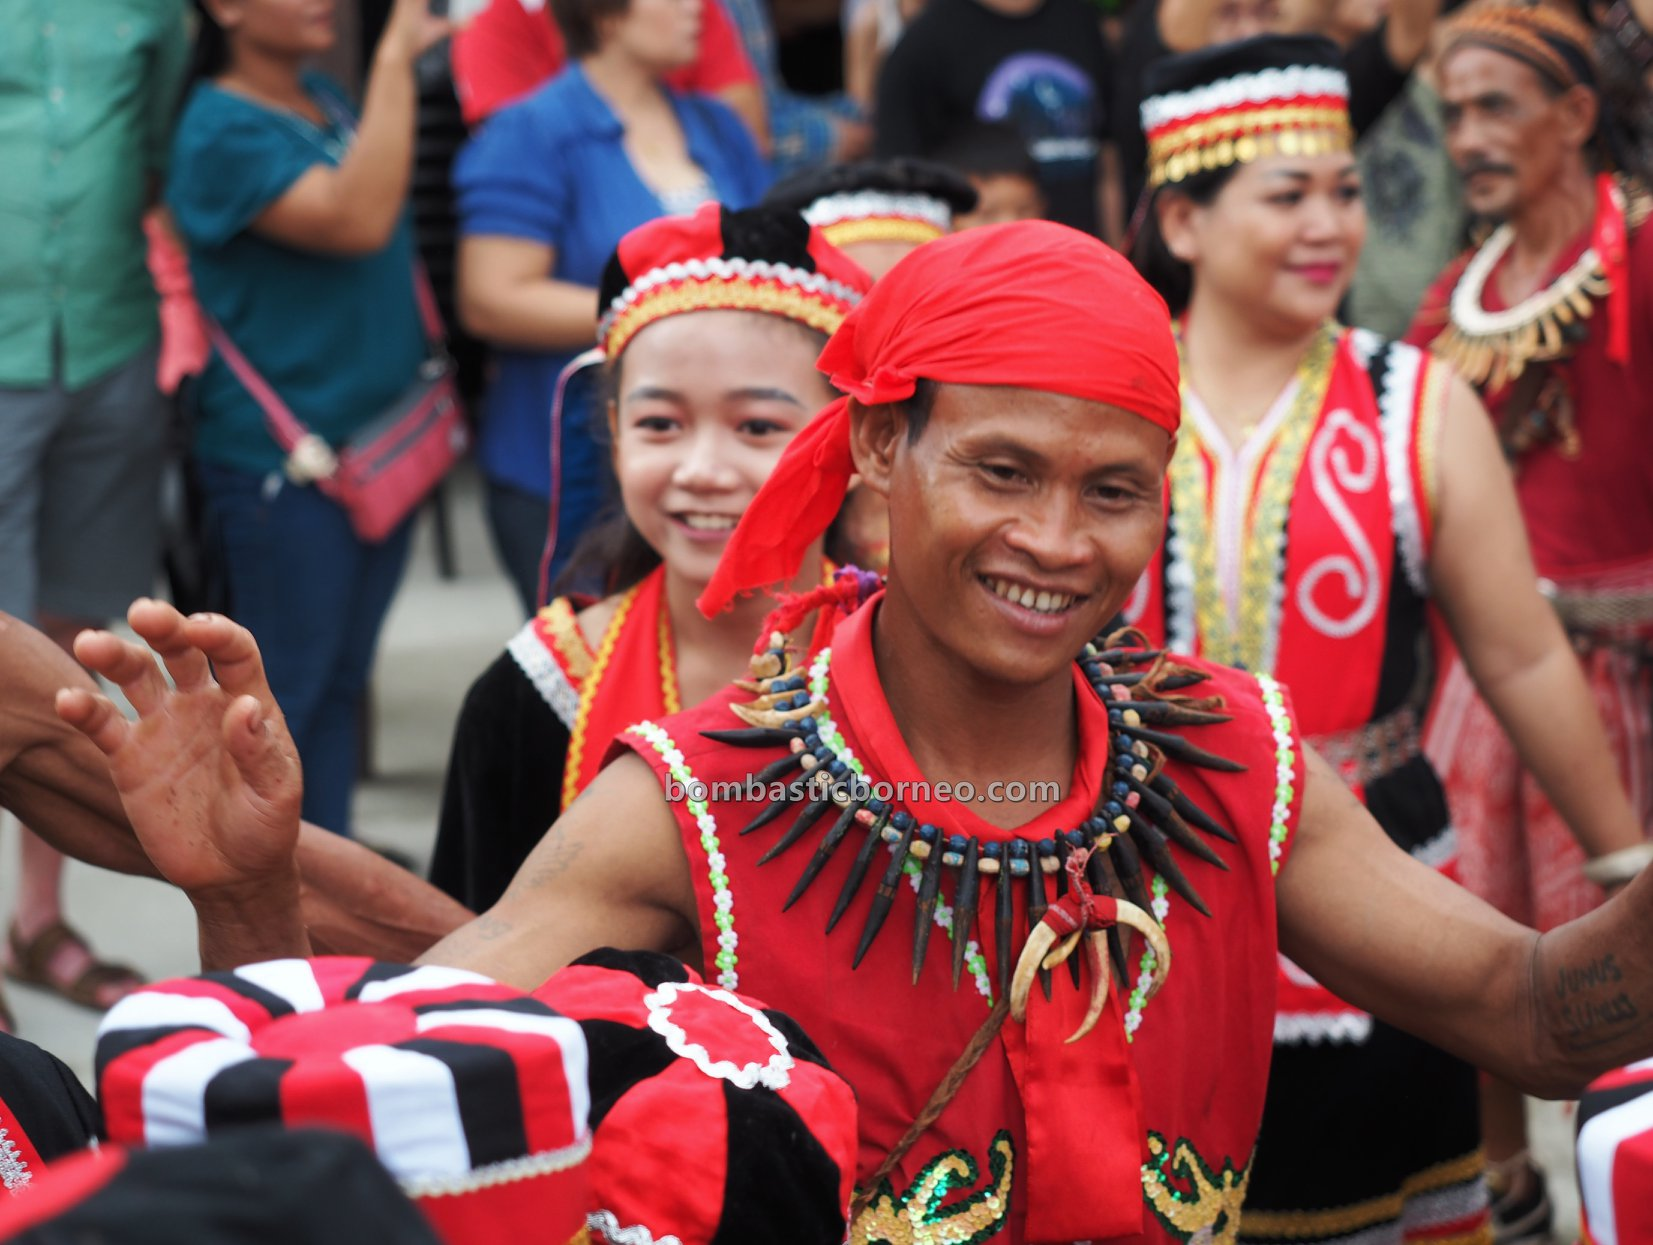 Kampung Gumbang, Bidayuh village, paddy harvest festival, traditional, backpackers, Kuching, Malaysia, culture, event, Ethnic, tribe, Tourism, cross border, 婆罗洲原住民丰收节日, 砂拉越传统土著文化,